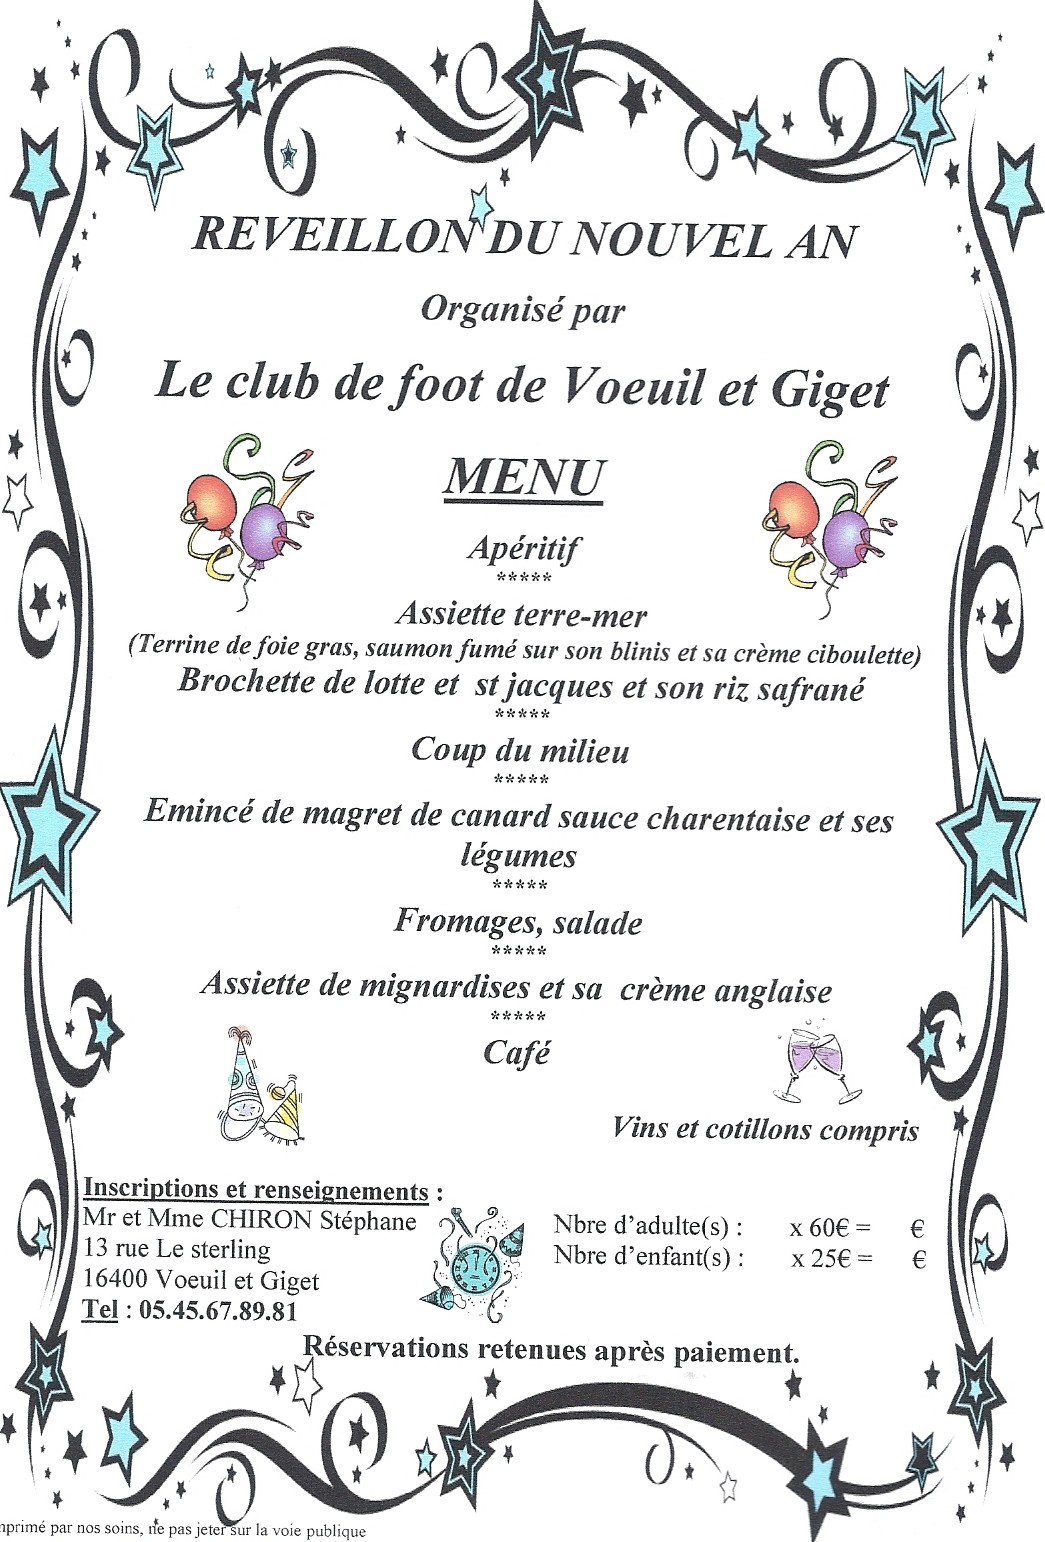 Plat Reveillon Nouvel An